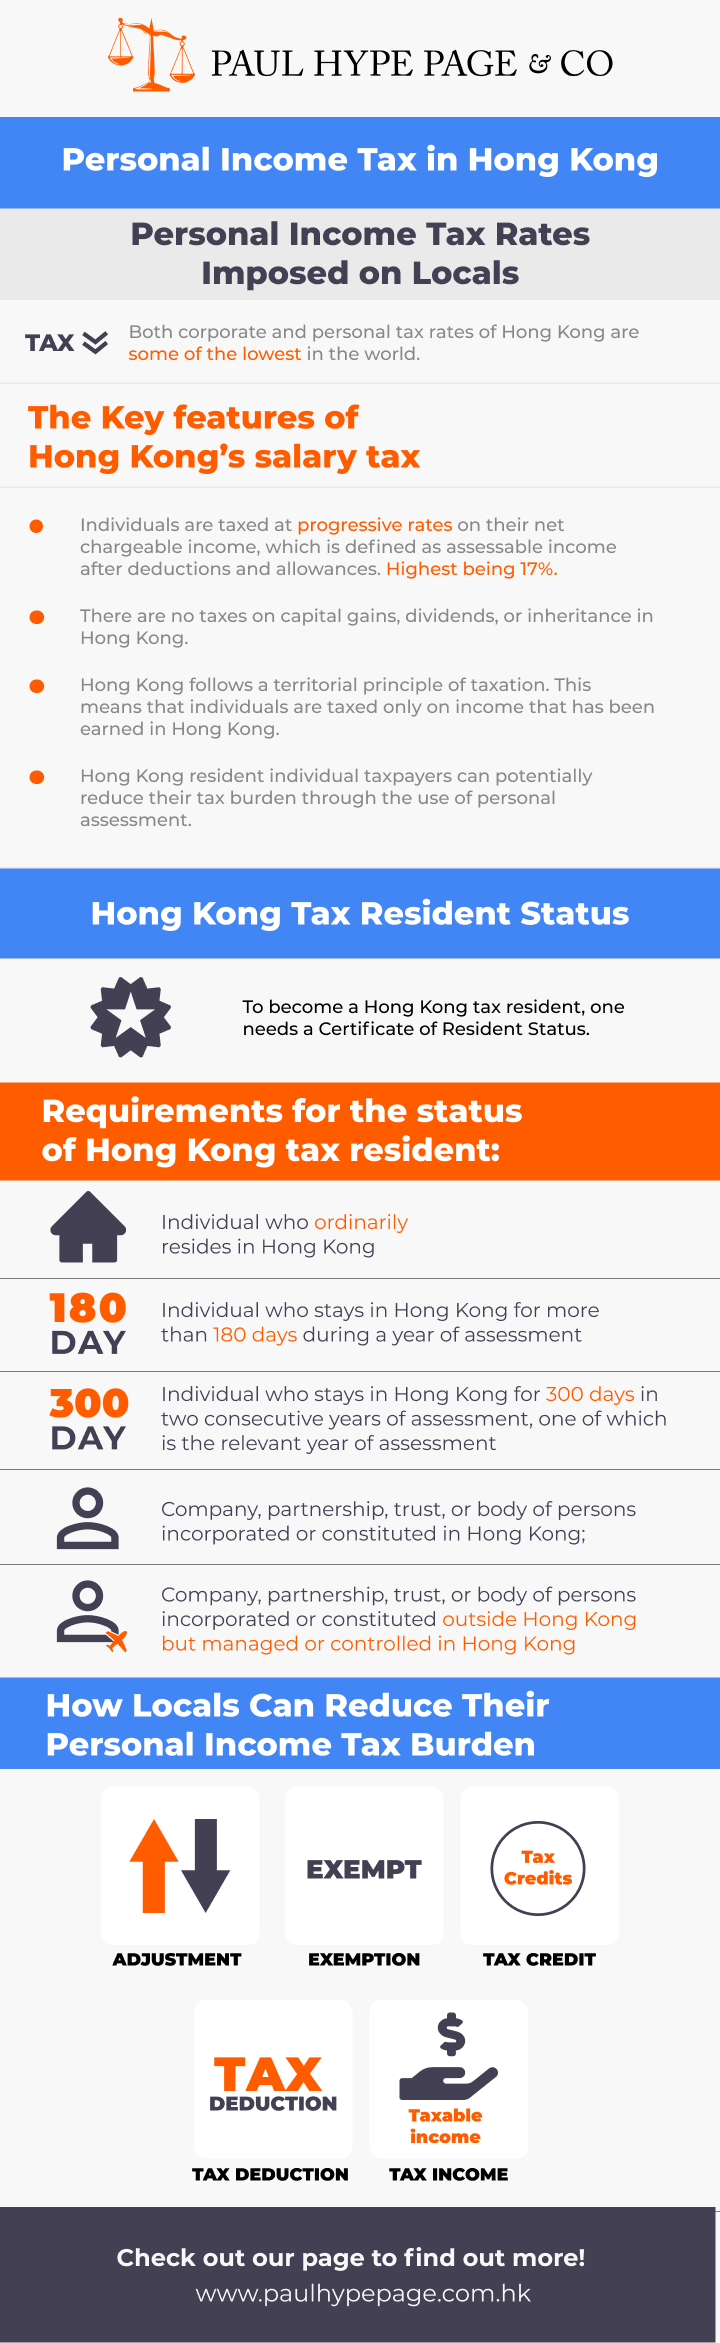 Personal-Income-Tax-in-Hong-Kong-Infographic